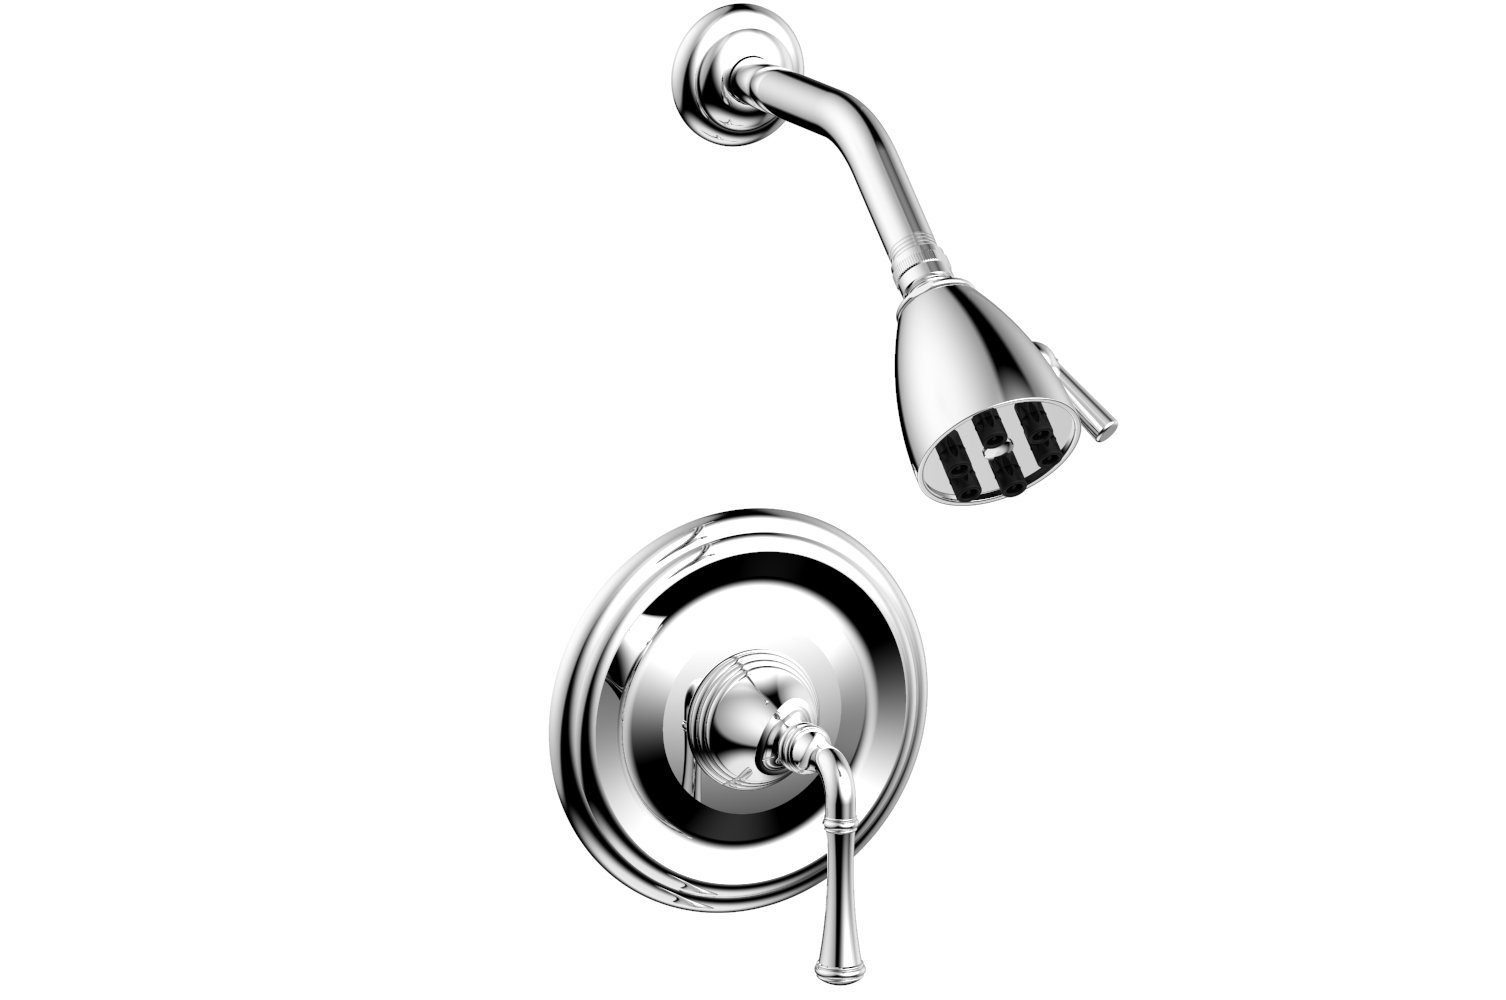 PHYLRICH DPB3205 3RING WALL MOUNT PRESSURE BALANCE SHOWER SET WITH STRAIGHT LEVER HANDLE